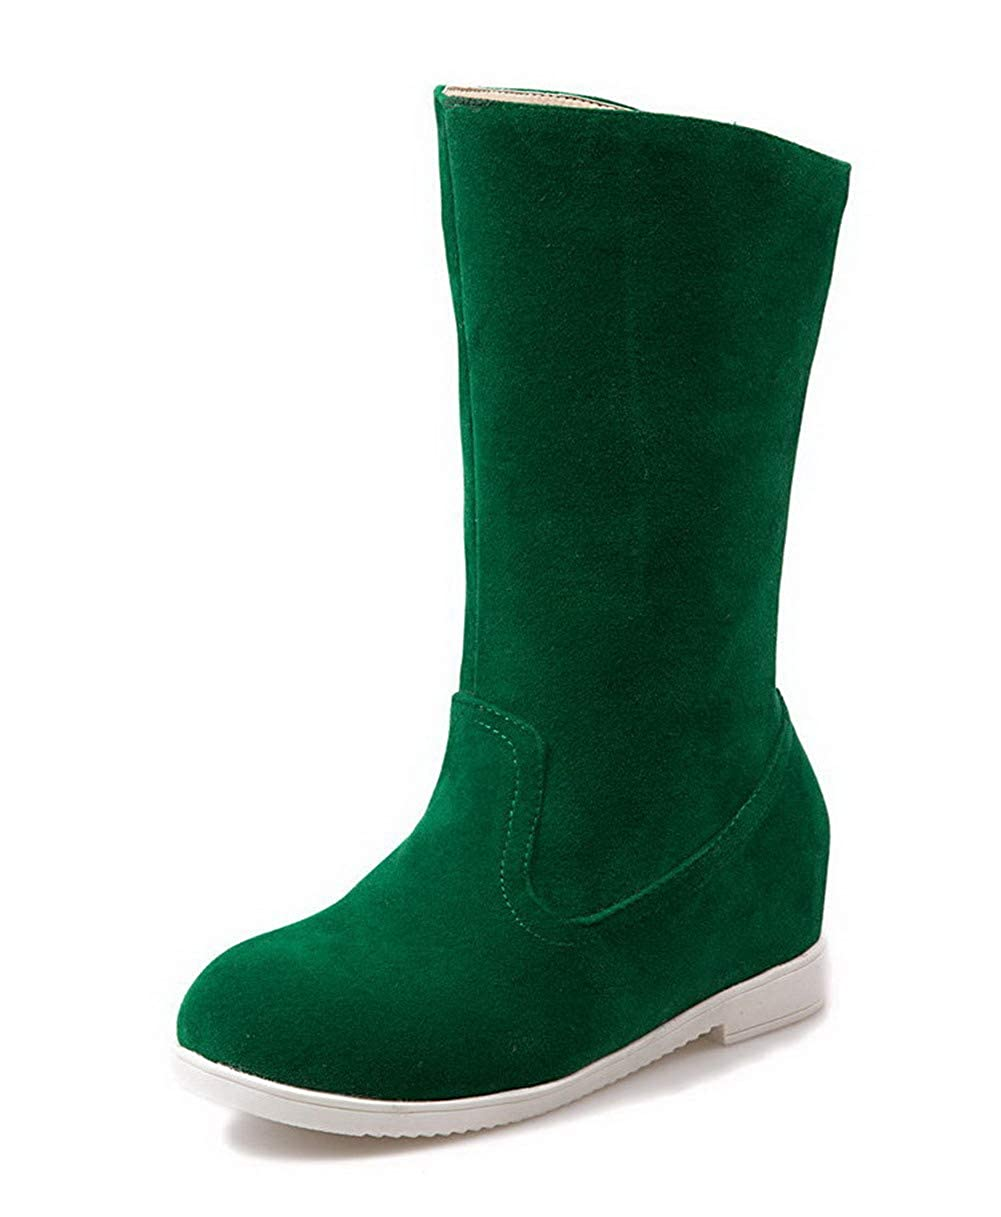 AllhqFashion Womens Low-Top Solid Pull-On Round-Toe Kitten-Heels Boots FBUXD021219